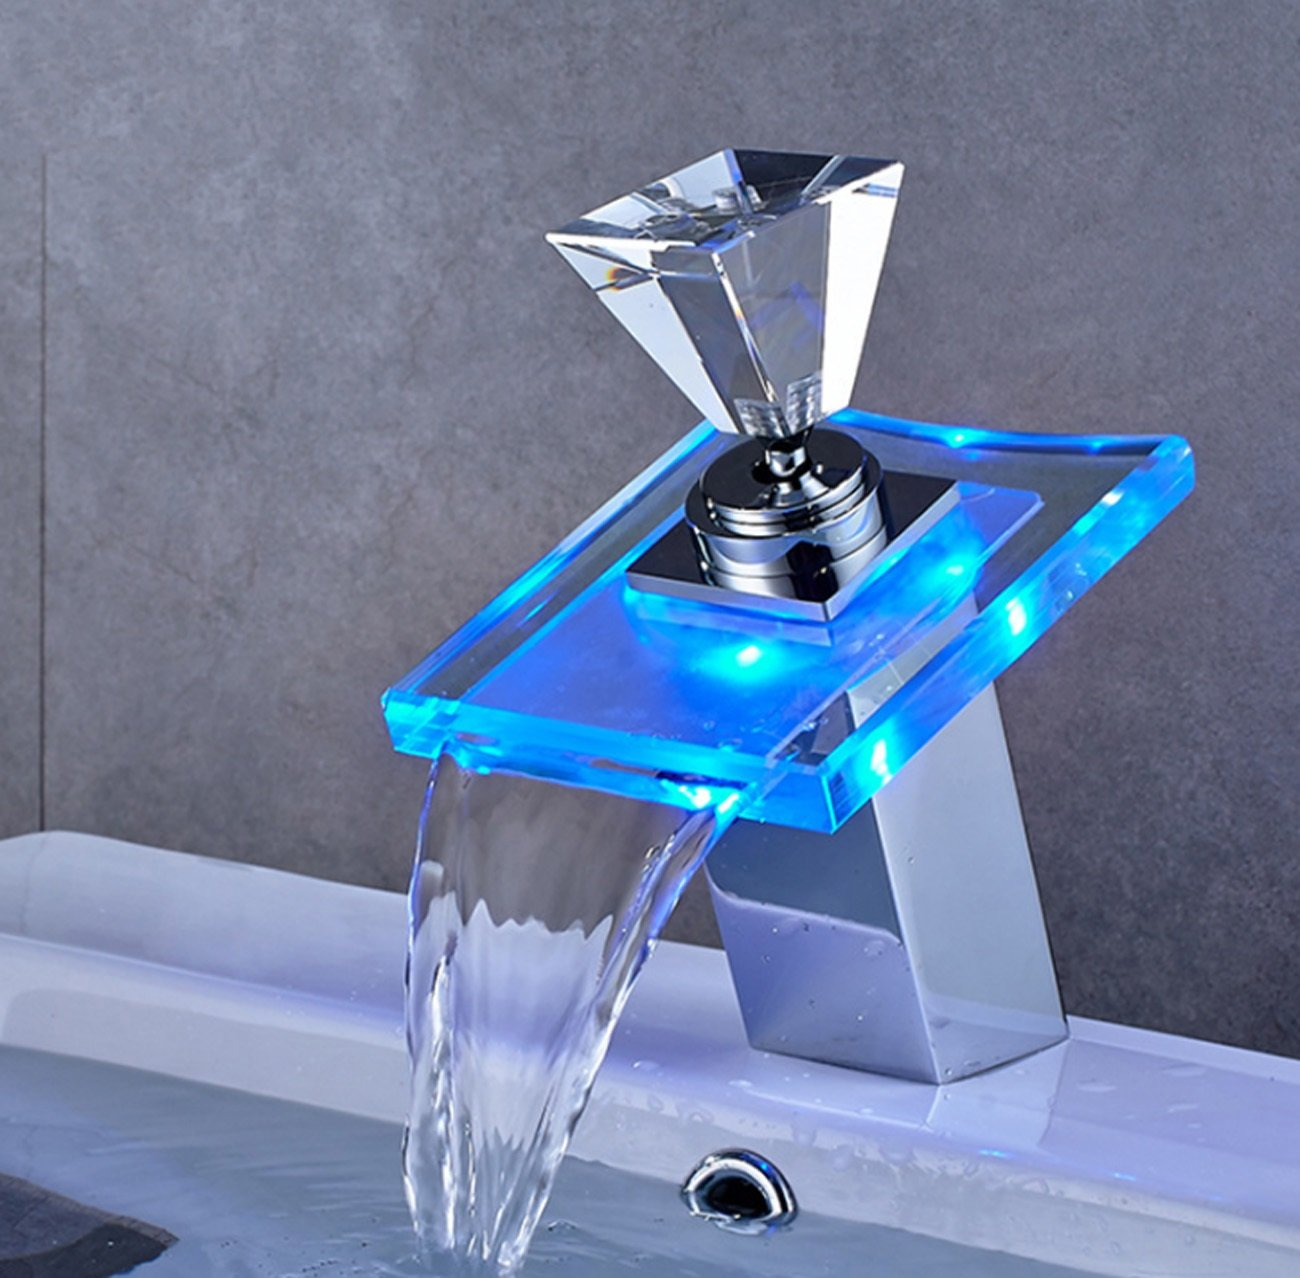 LED Light Colour Changing Waterfall Bathroom Sink Faucet,One Hole Single Handle Glass Bathroom Basin Tap With Temperature Sensor,Ceramic Valve